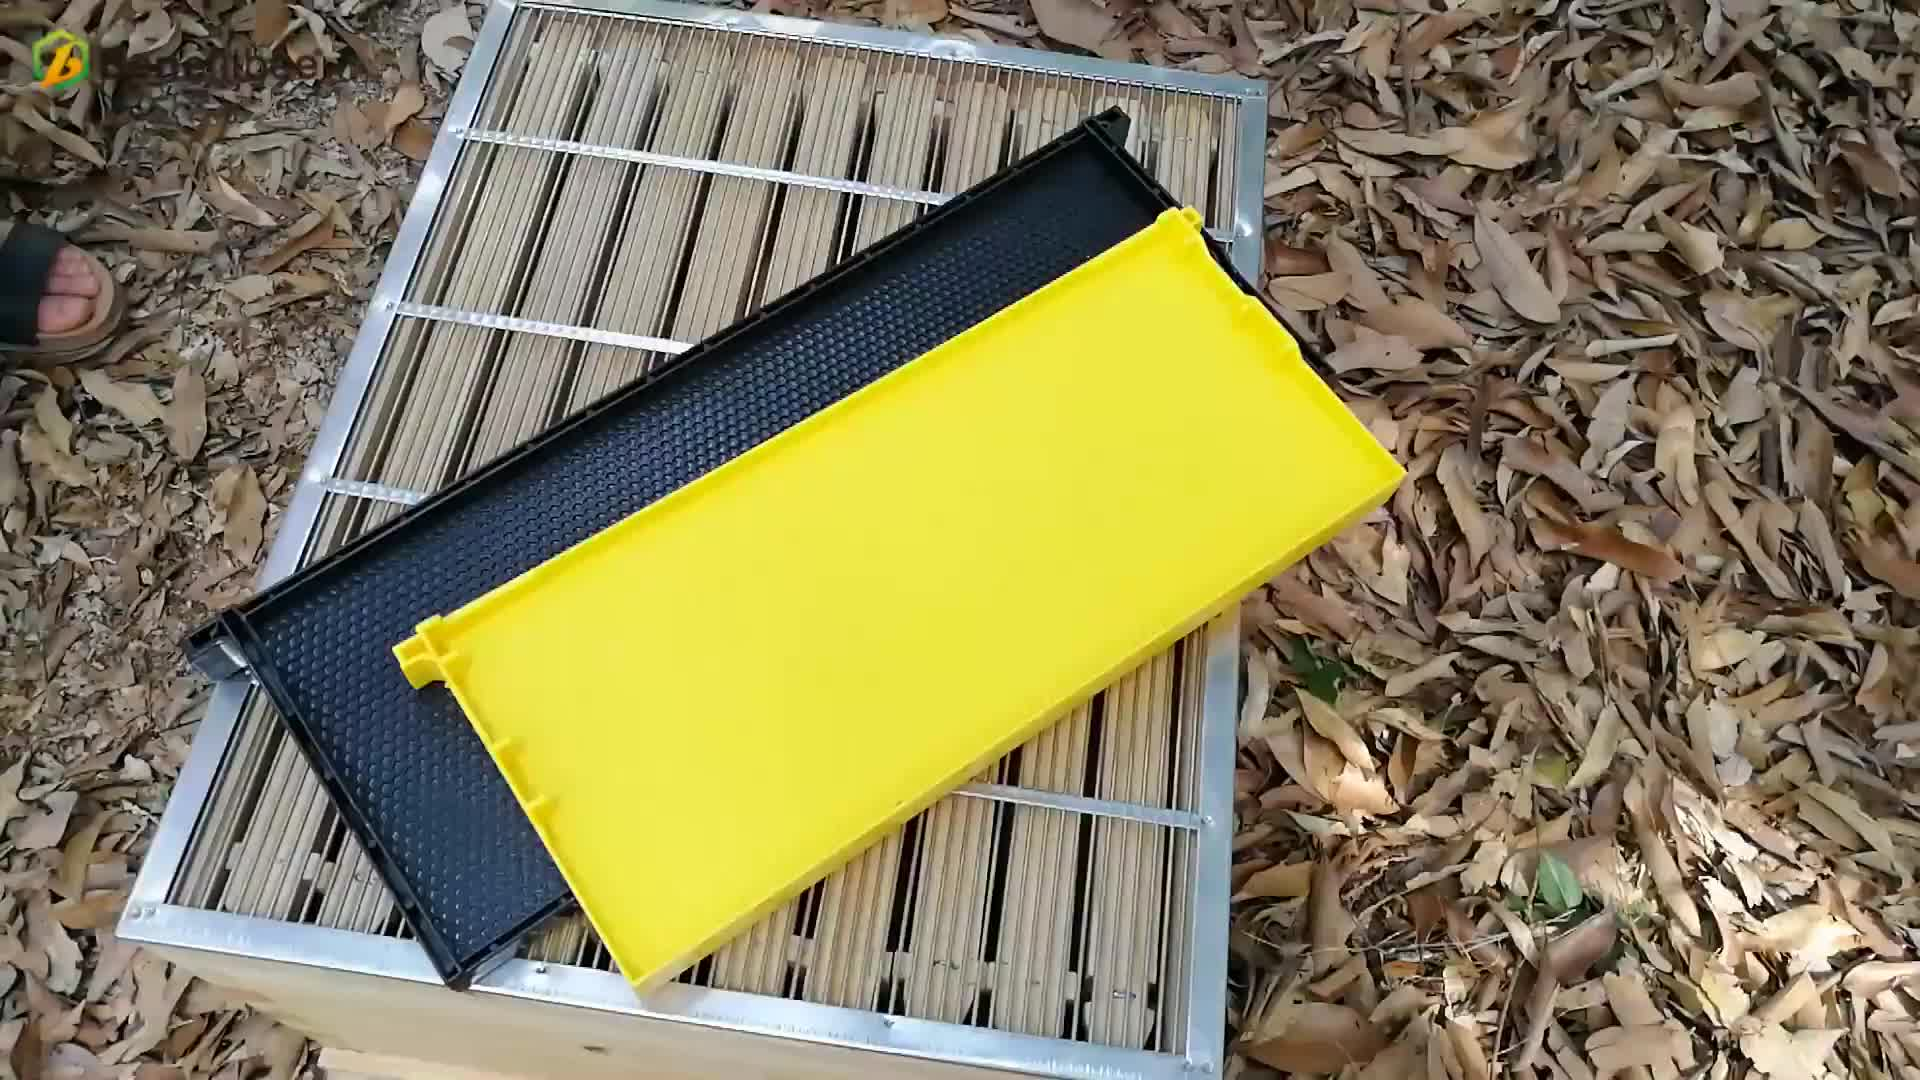 beekeeping equipment bee Hive frame with plastic comb foundation